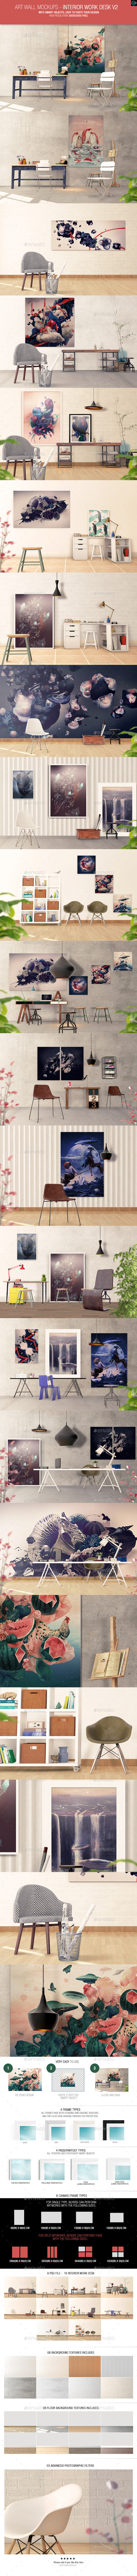 GraphicRiver Art Wall Mockups Interior Work Desk V2 10817426